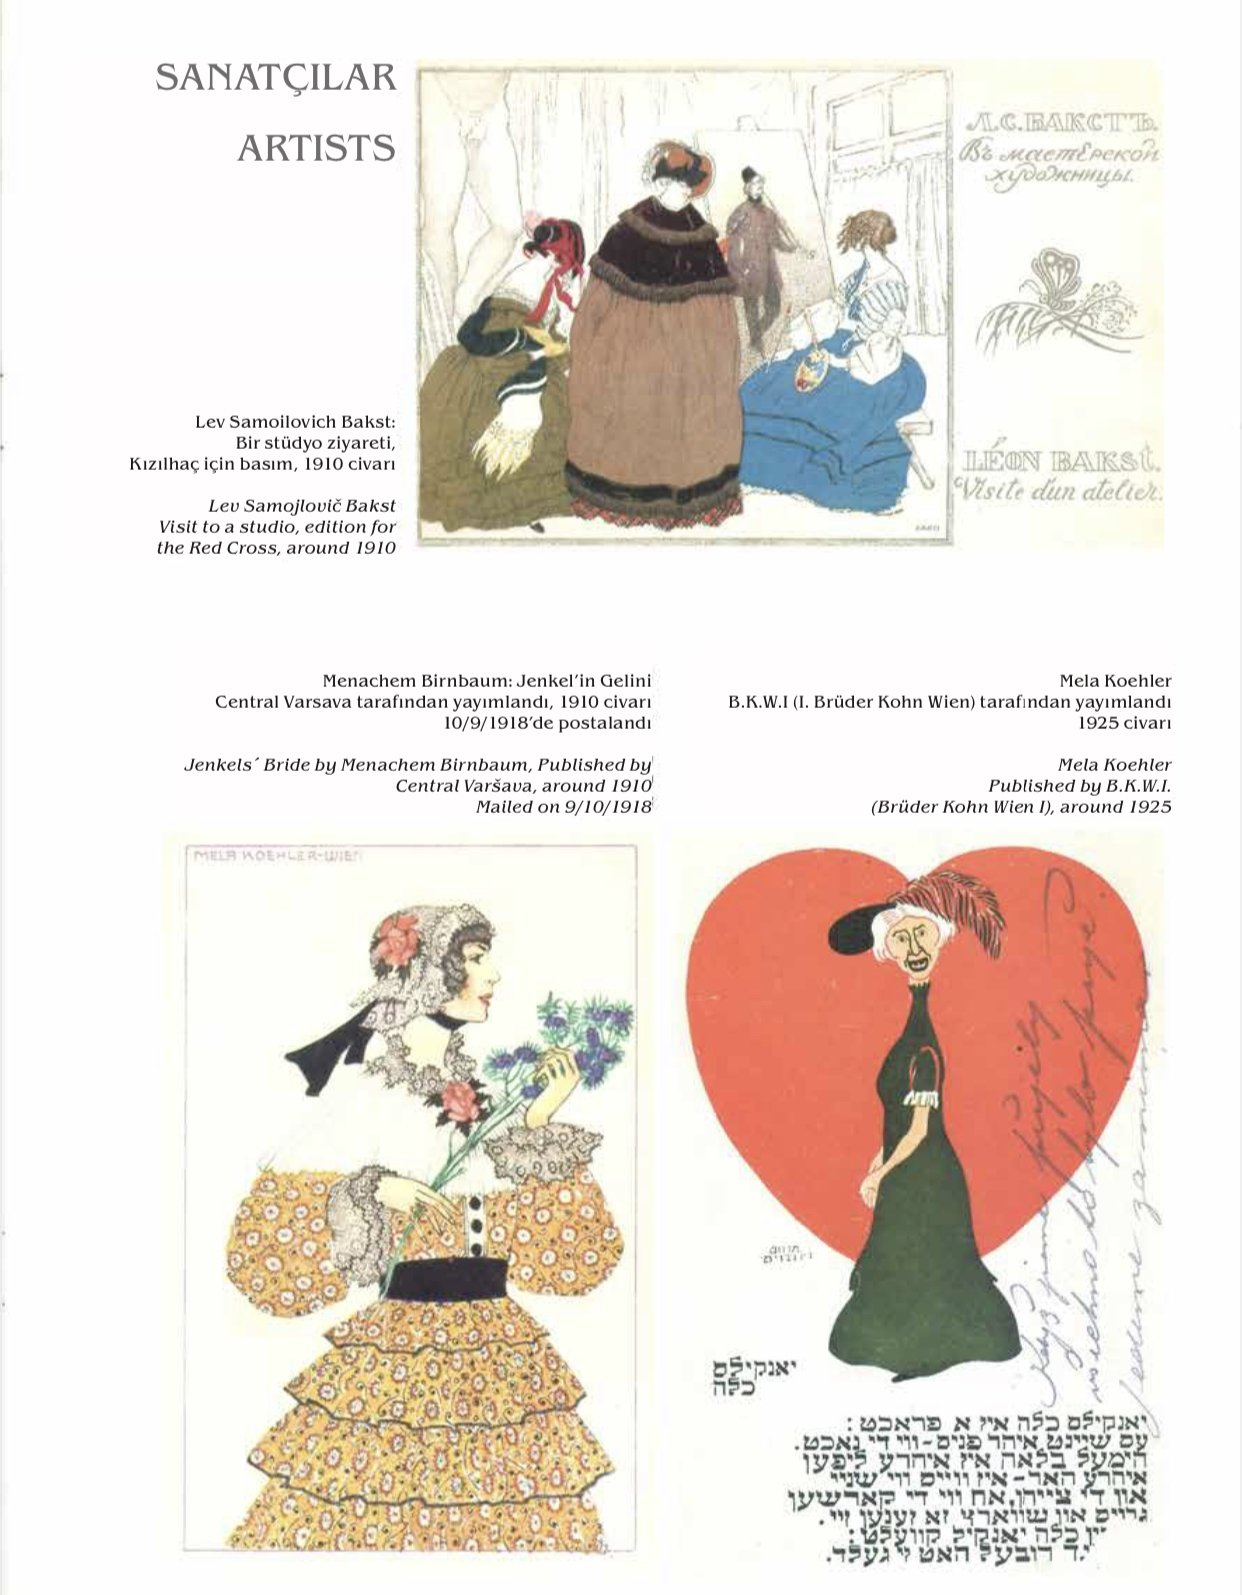 Jewish postcard examples show artists of the period in